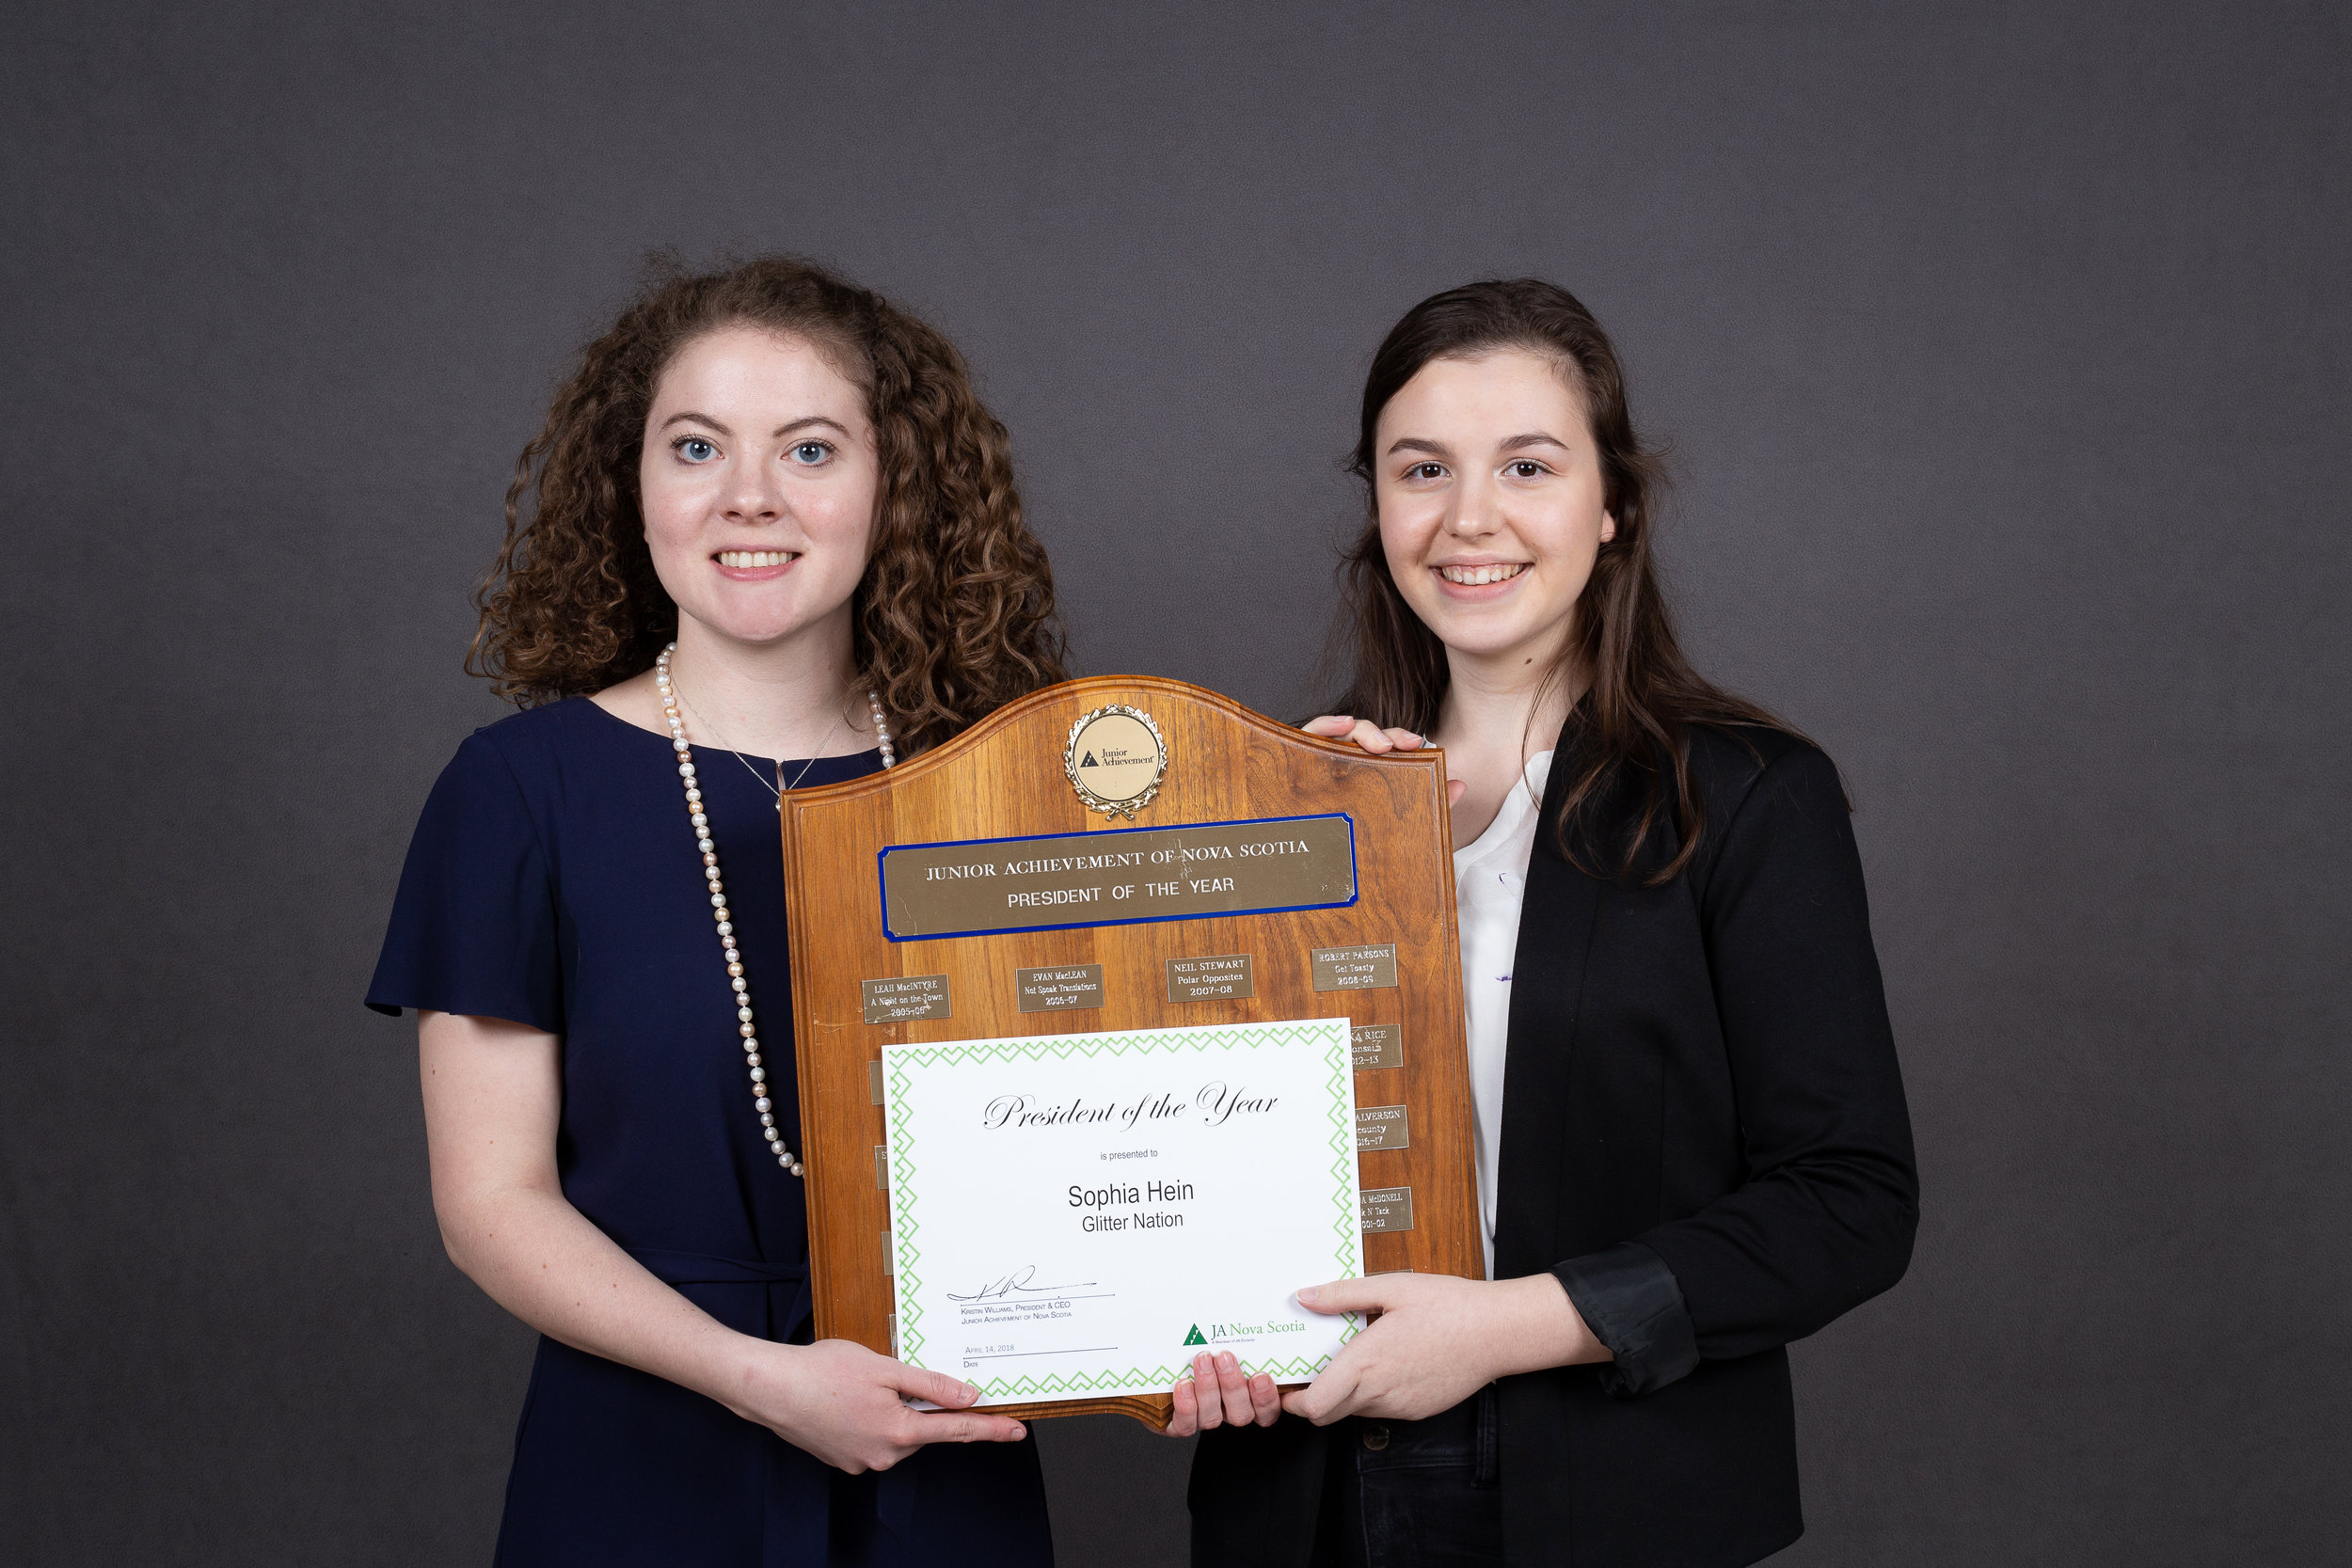 Stephanie (Left) pictured presenting the President of the Year Award which she won in 2013-2014 to the newest recipient, Sophia Hein (Right).